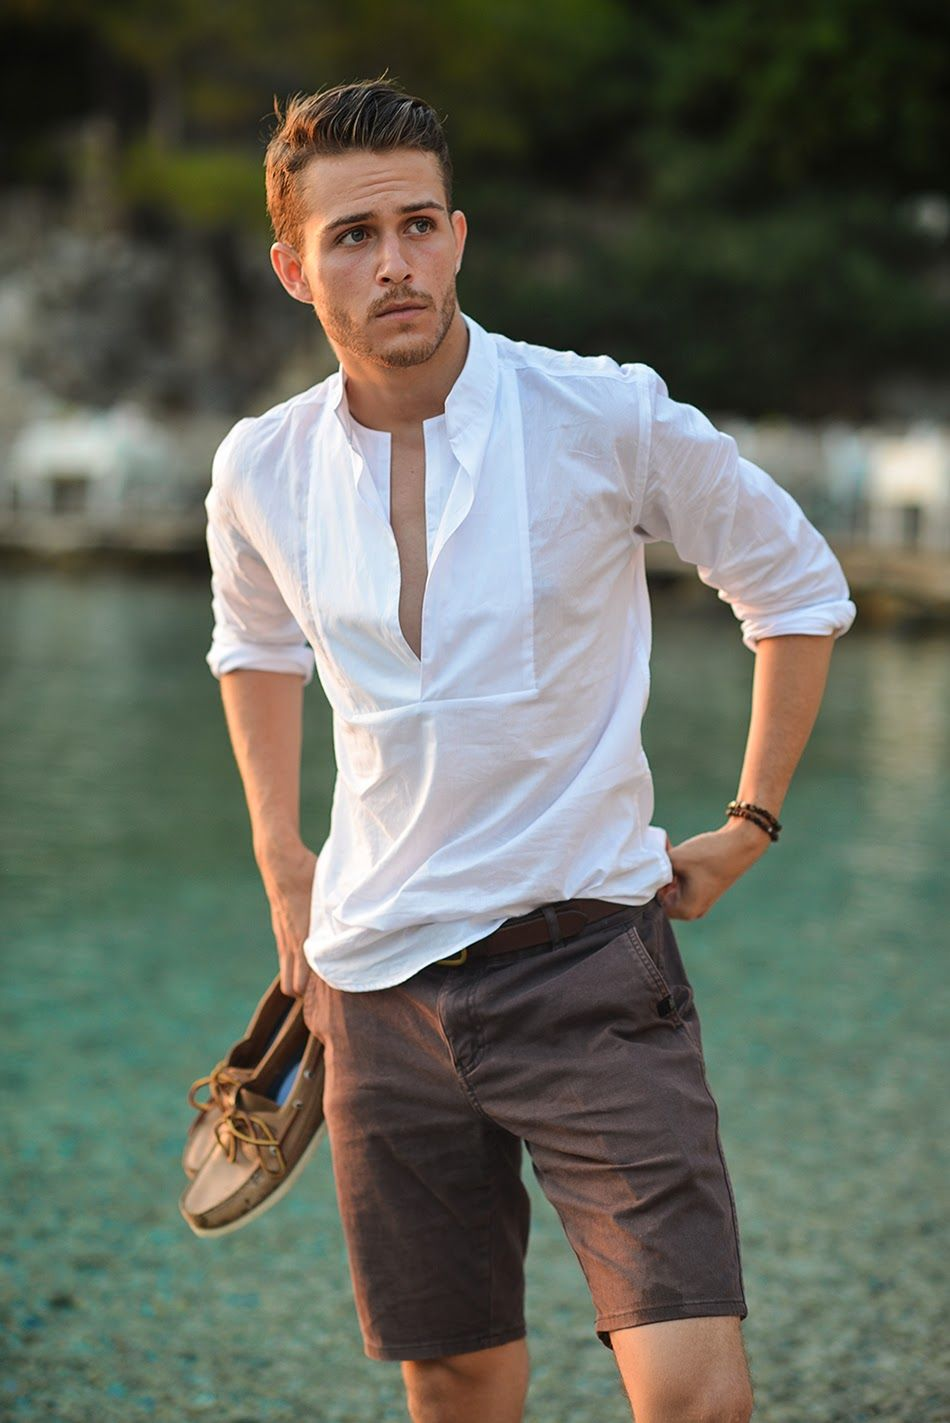 Men's White Linen Long Sleeve Shirt, Brown Shorts, Brown Leather ...